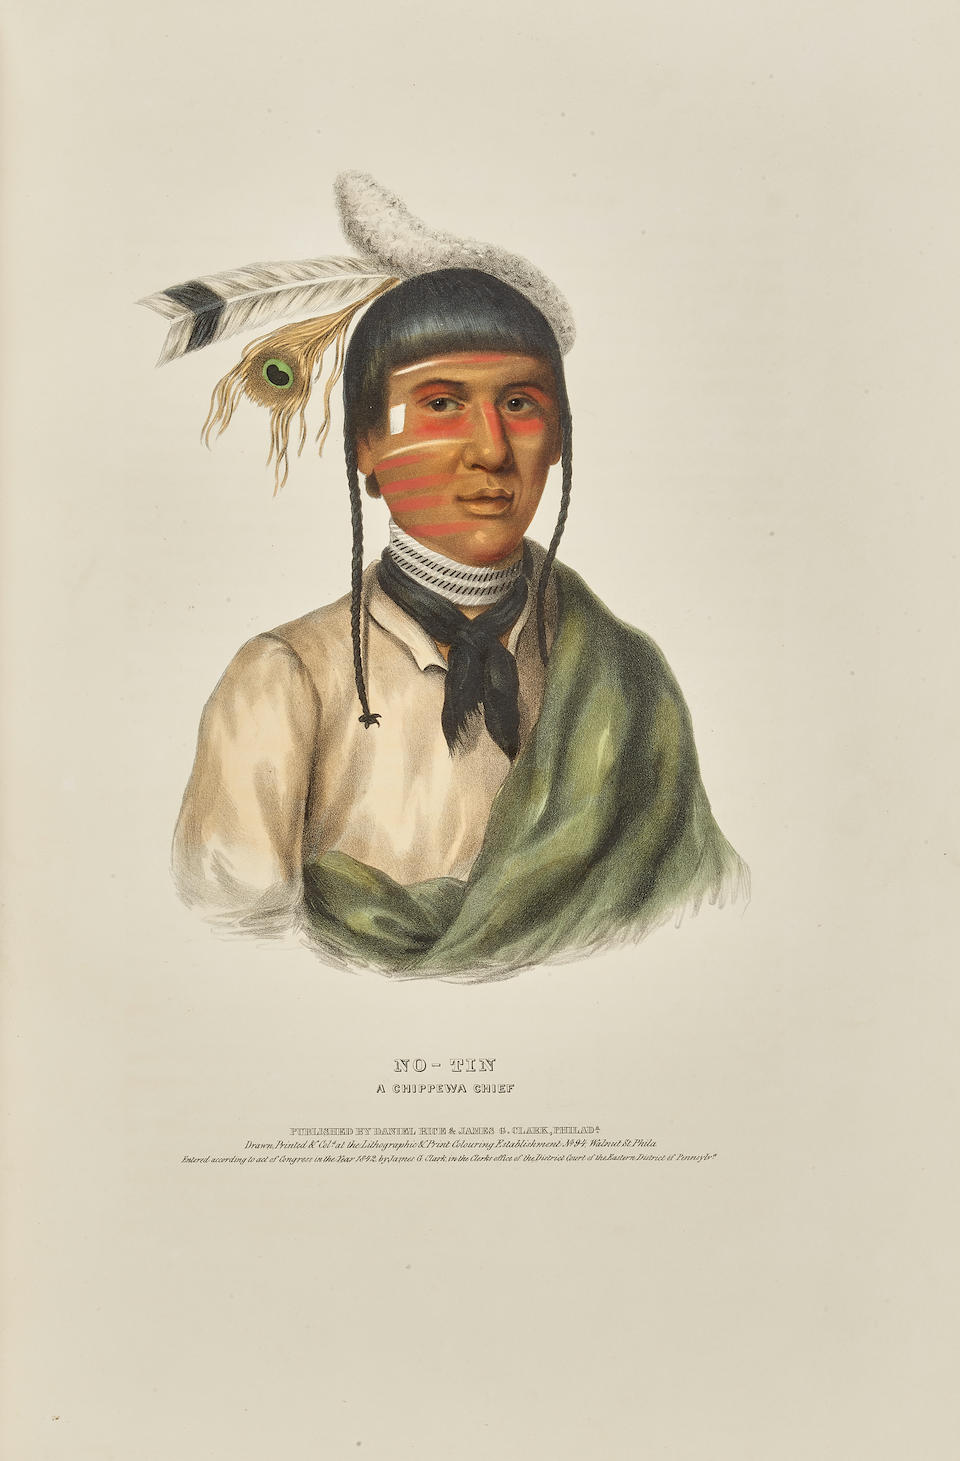 MCKENNEY, THOMAS L. 1785-1859; AND JAMES HALL. 1793-1868. History of the Indian Tribes of North America.  Philadelphia: Frederick W. Greenough; Daniel Rice & James G. Clark, 1838-42-44.